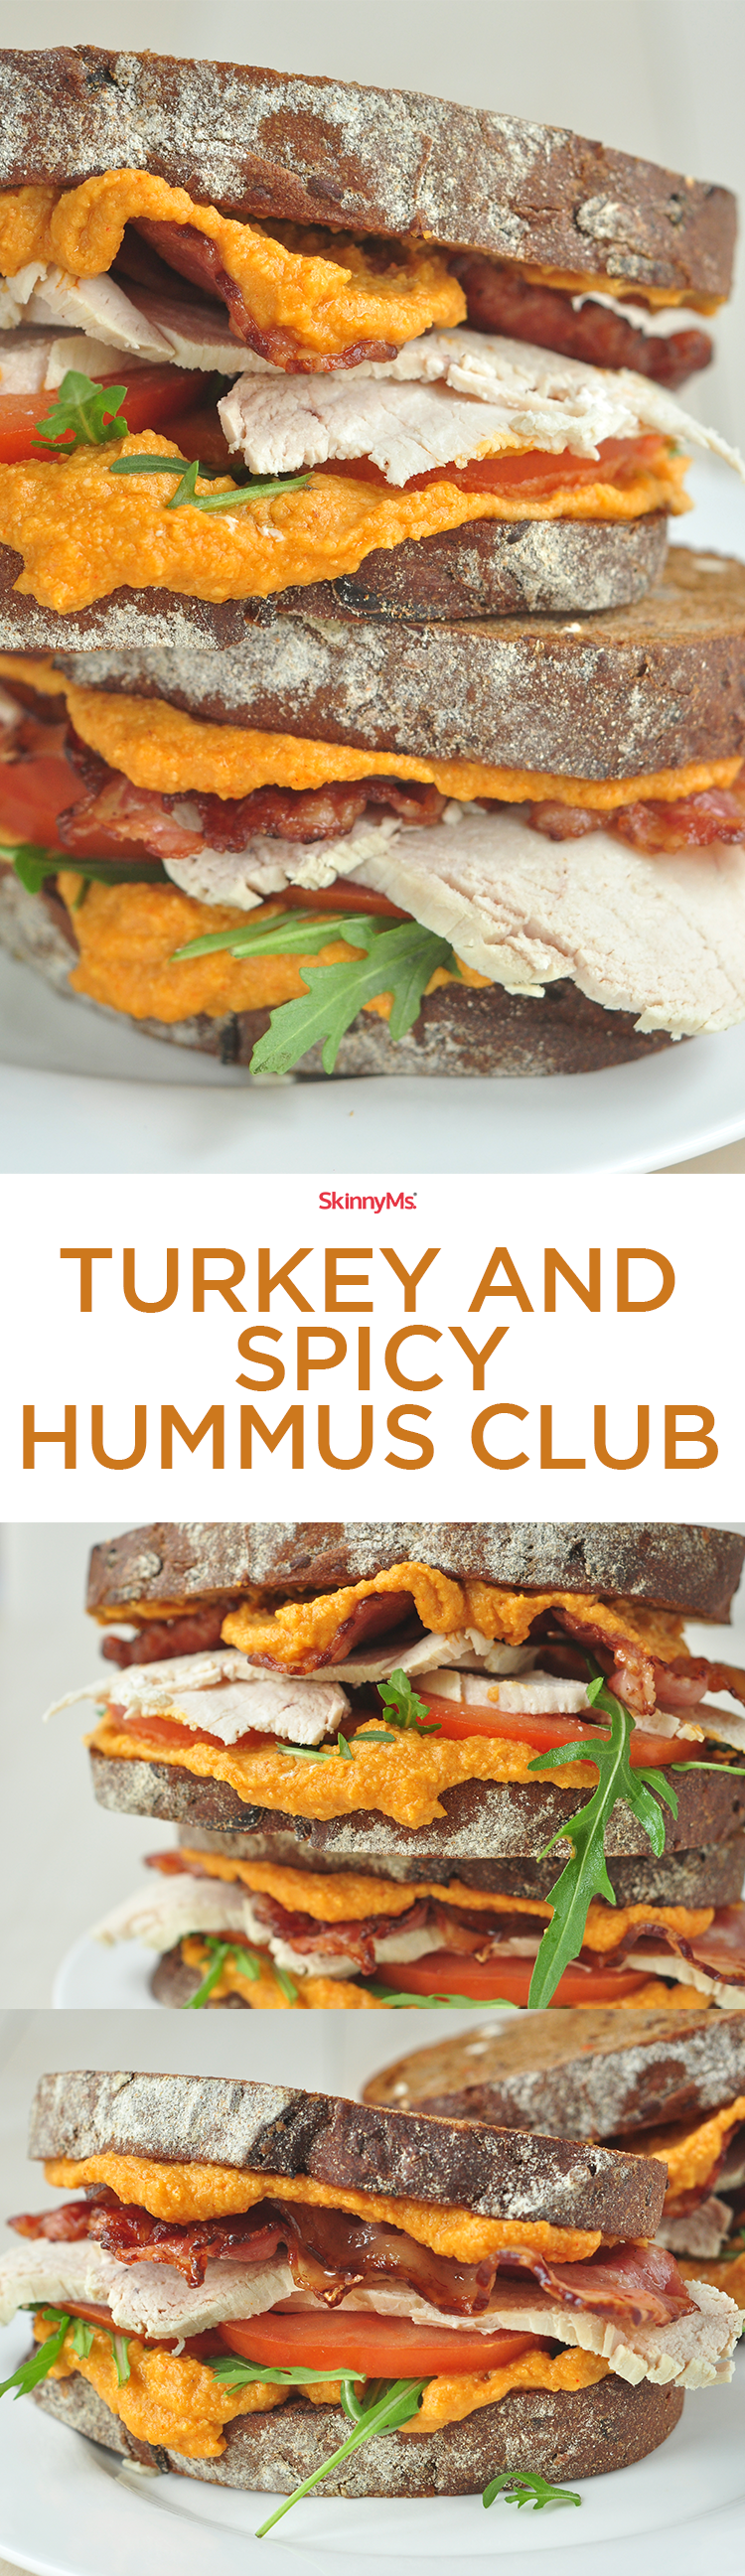 Turkey and Spicy Hummus Club